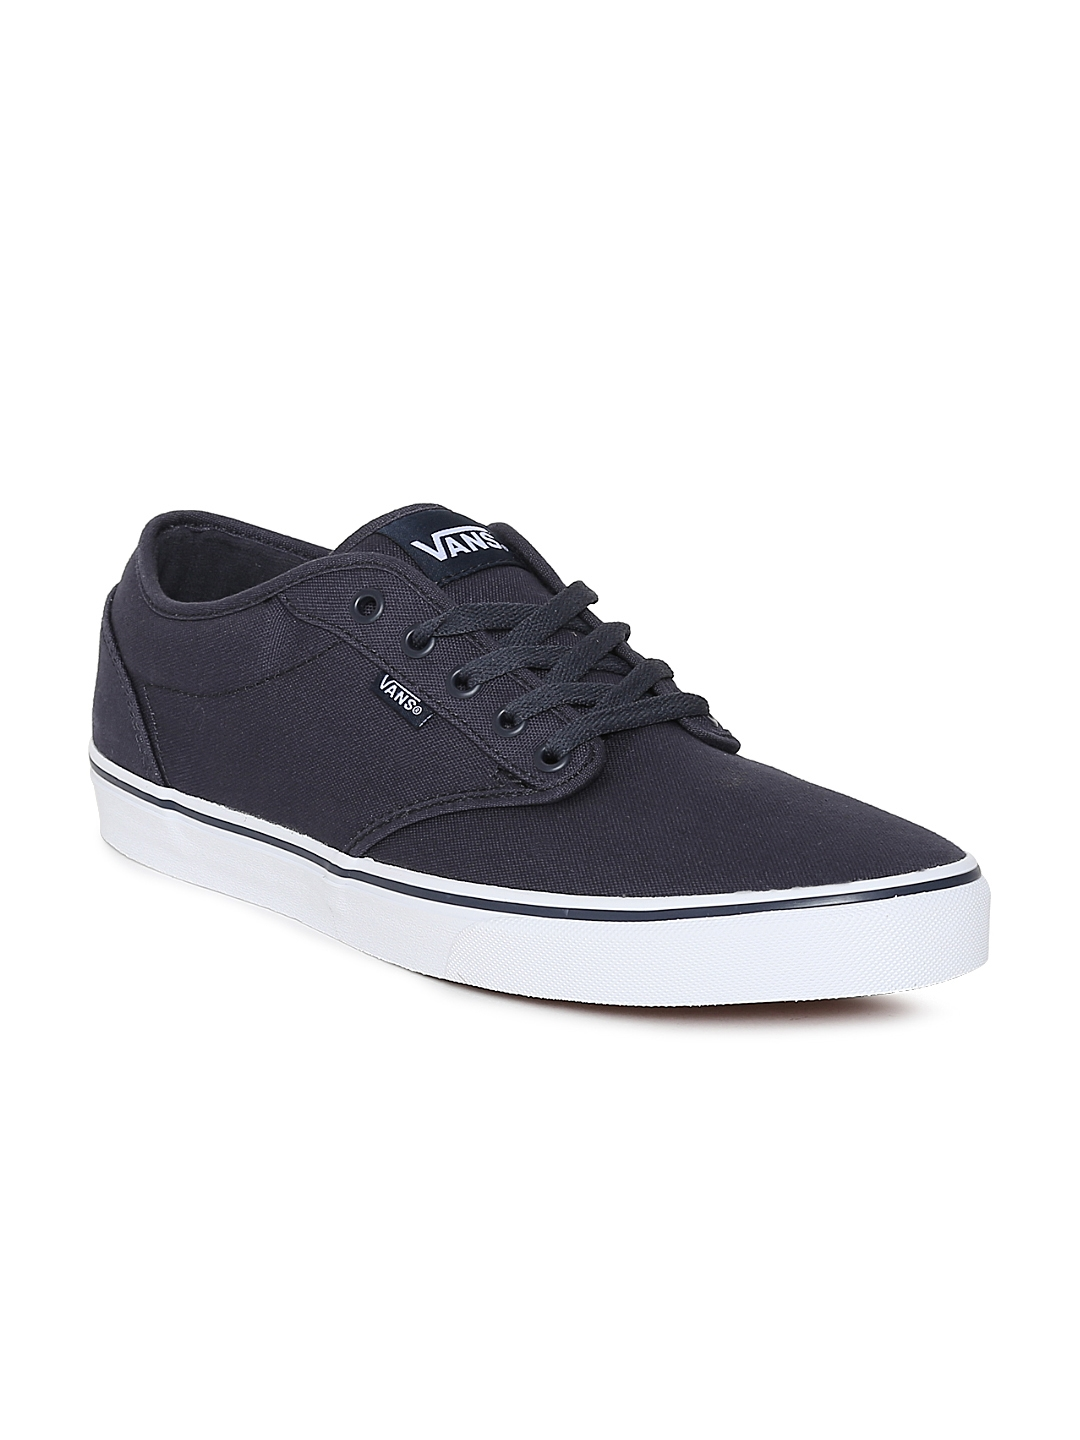 Buy Vans Men Navy Blue Atwood Sneakers - Casual Shoes for Men ... 440275dfe